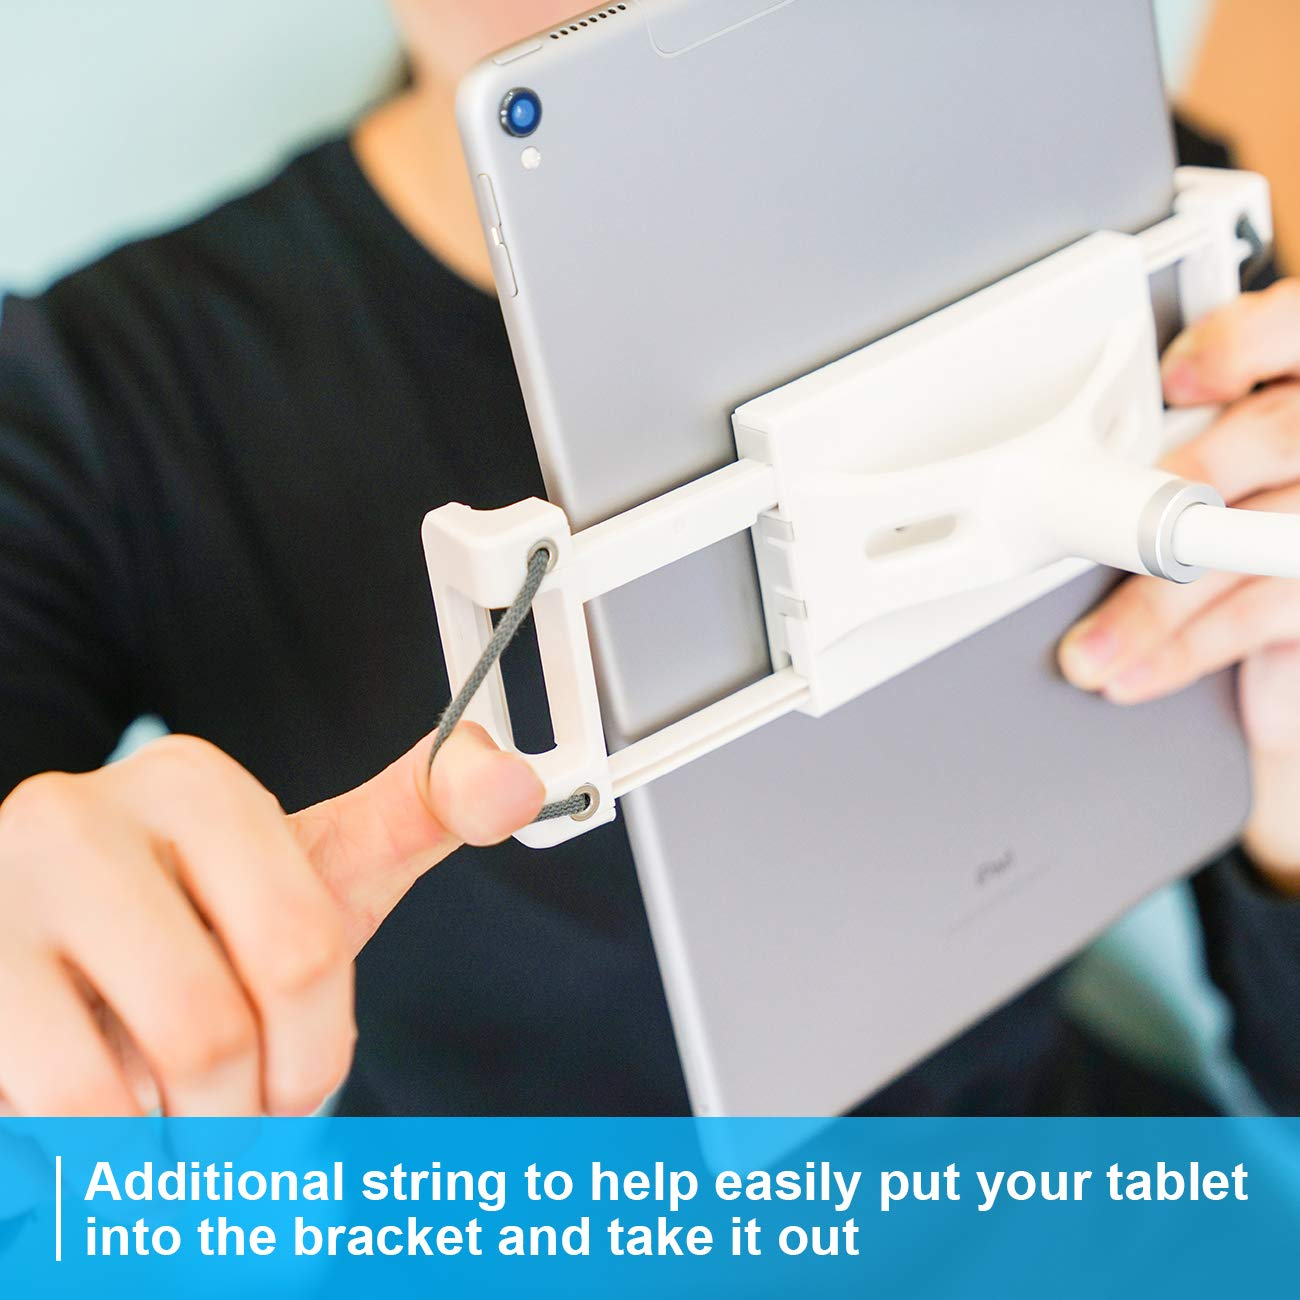 Gooseneck Tablet Holder, Lamicall Tablet Stand: Lazy Holder Flexible Long Arm Tablet Mount Compatible with iPad Mini 2 3 4, iPad Pro, iPad Air, Phone XS Max XR X 8 7 6 Plus and More 4-10.5 in Devices by Lamicall (Image #5)